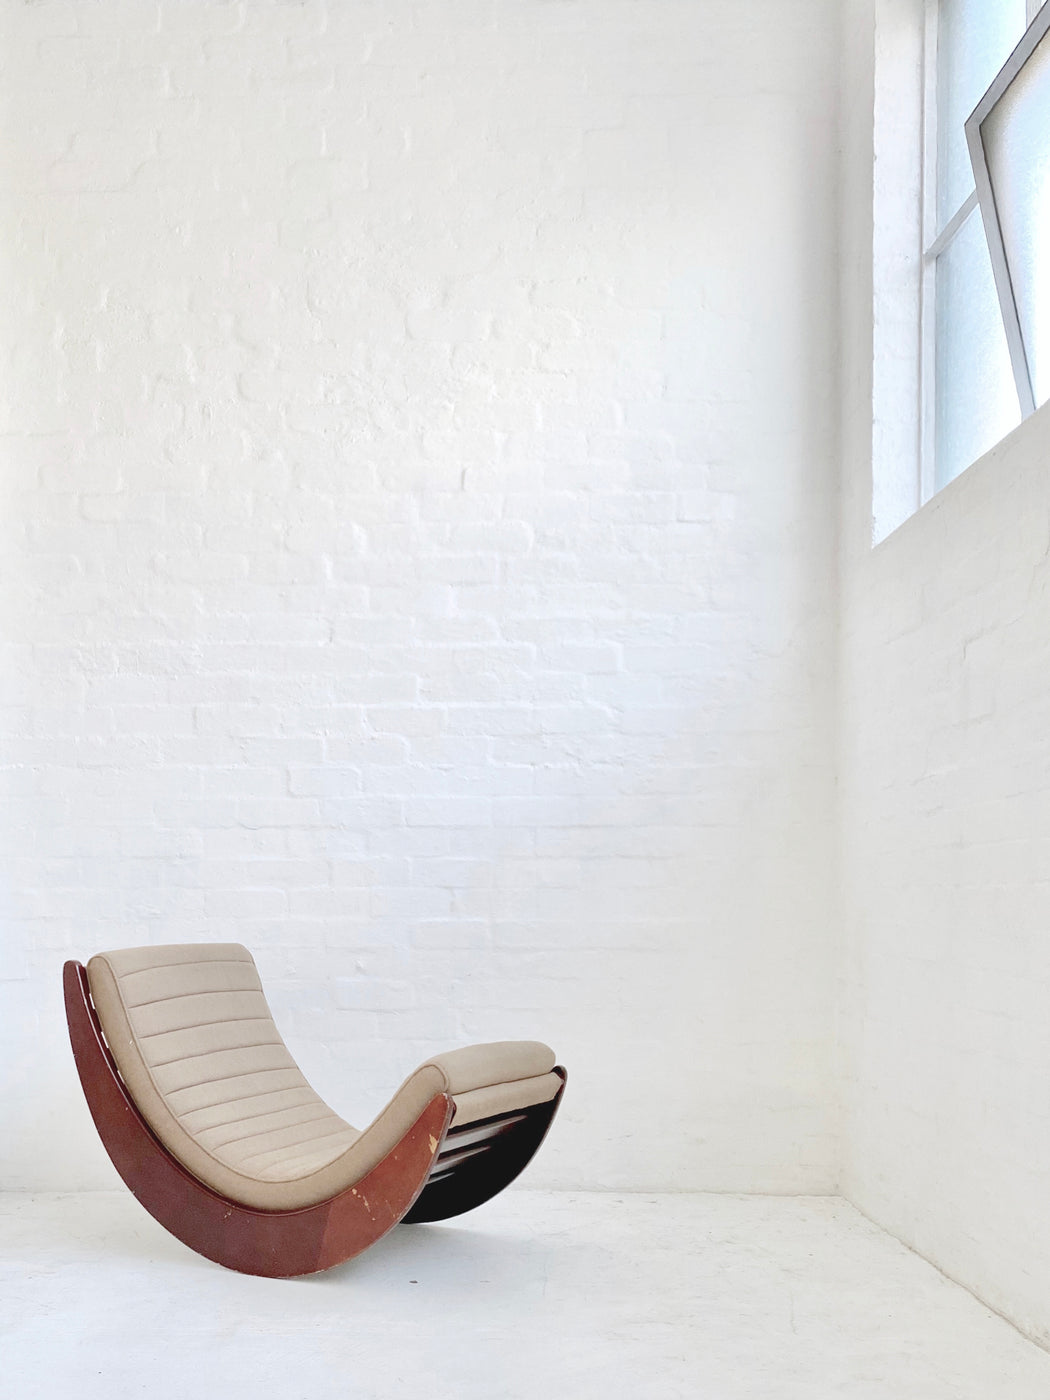 Verner Panton 'Relaxer 2' Chair